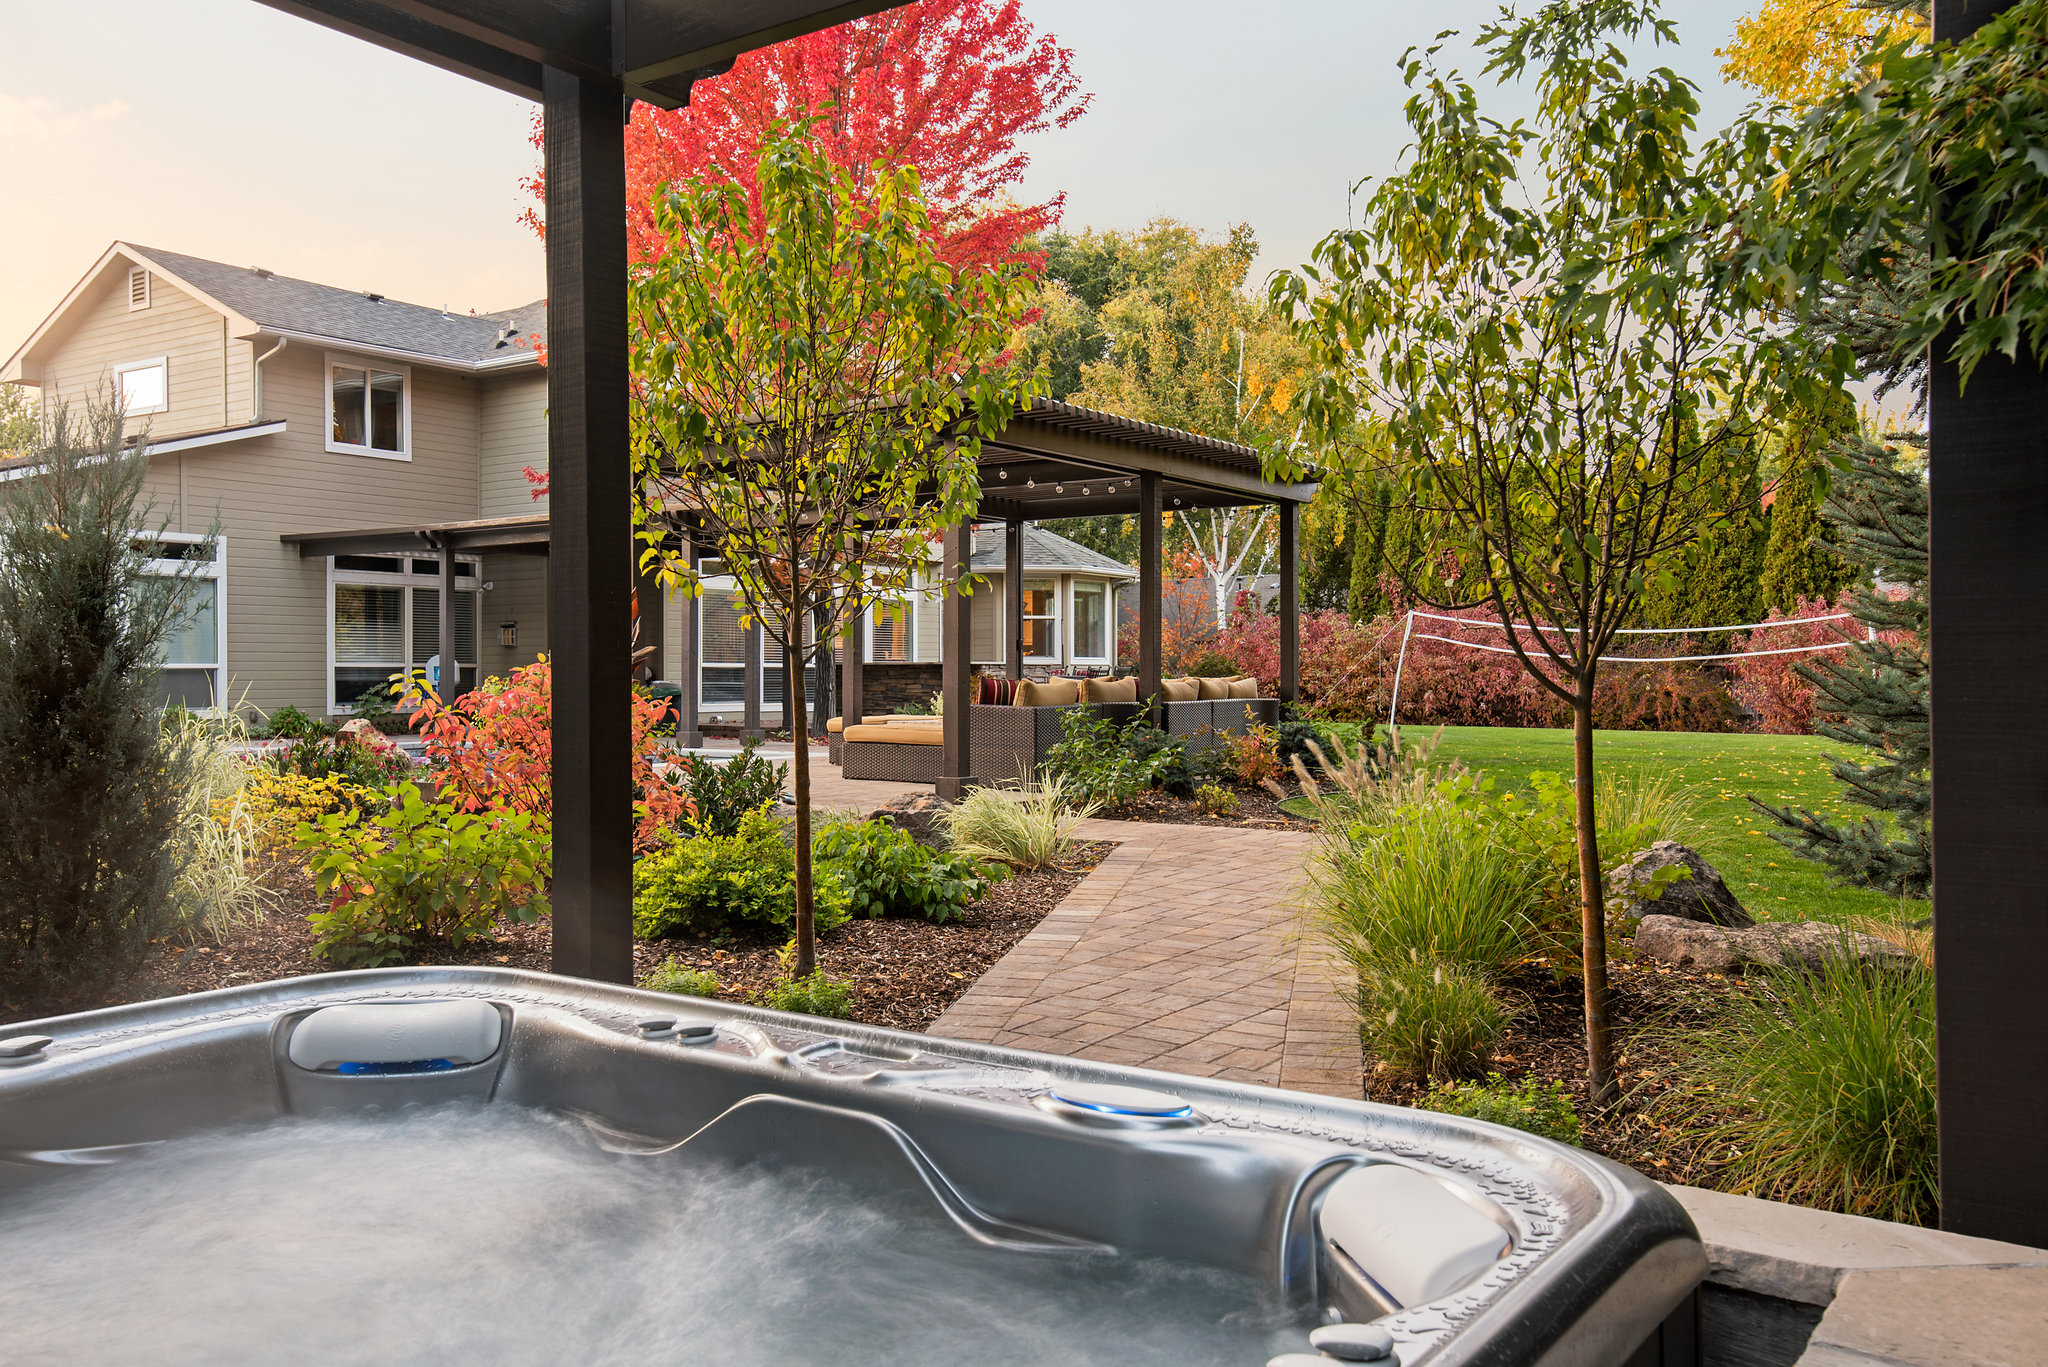 Holden Lane Pool/Spa Feature - 1 | The Garden Artist Boise, ID